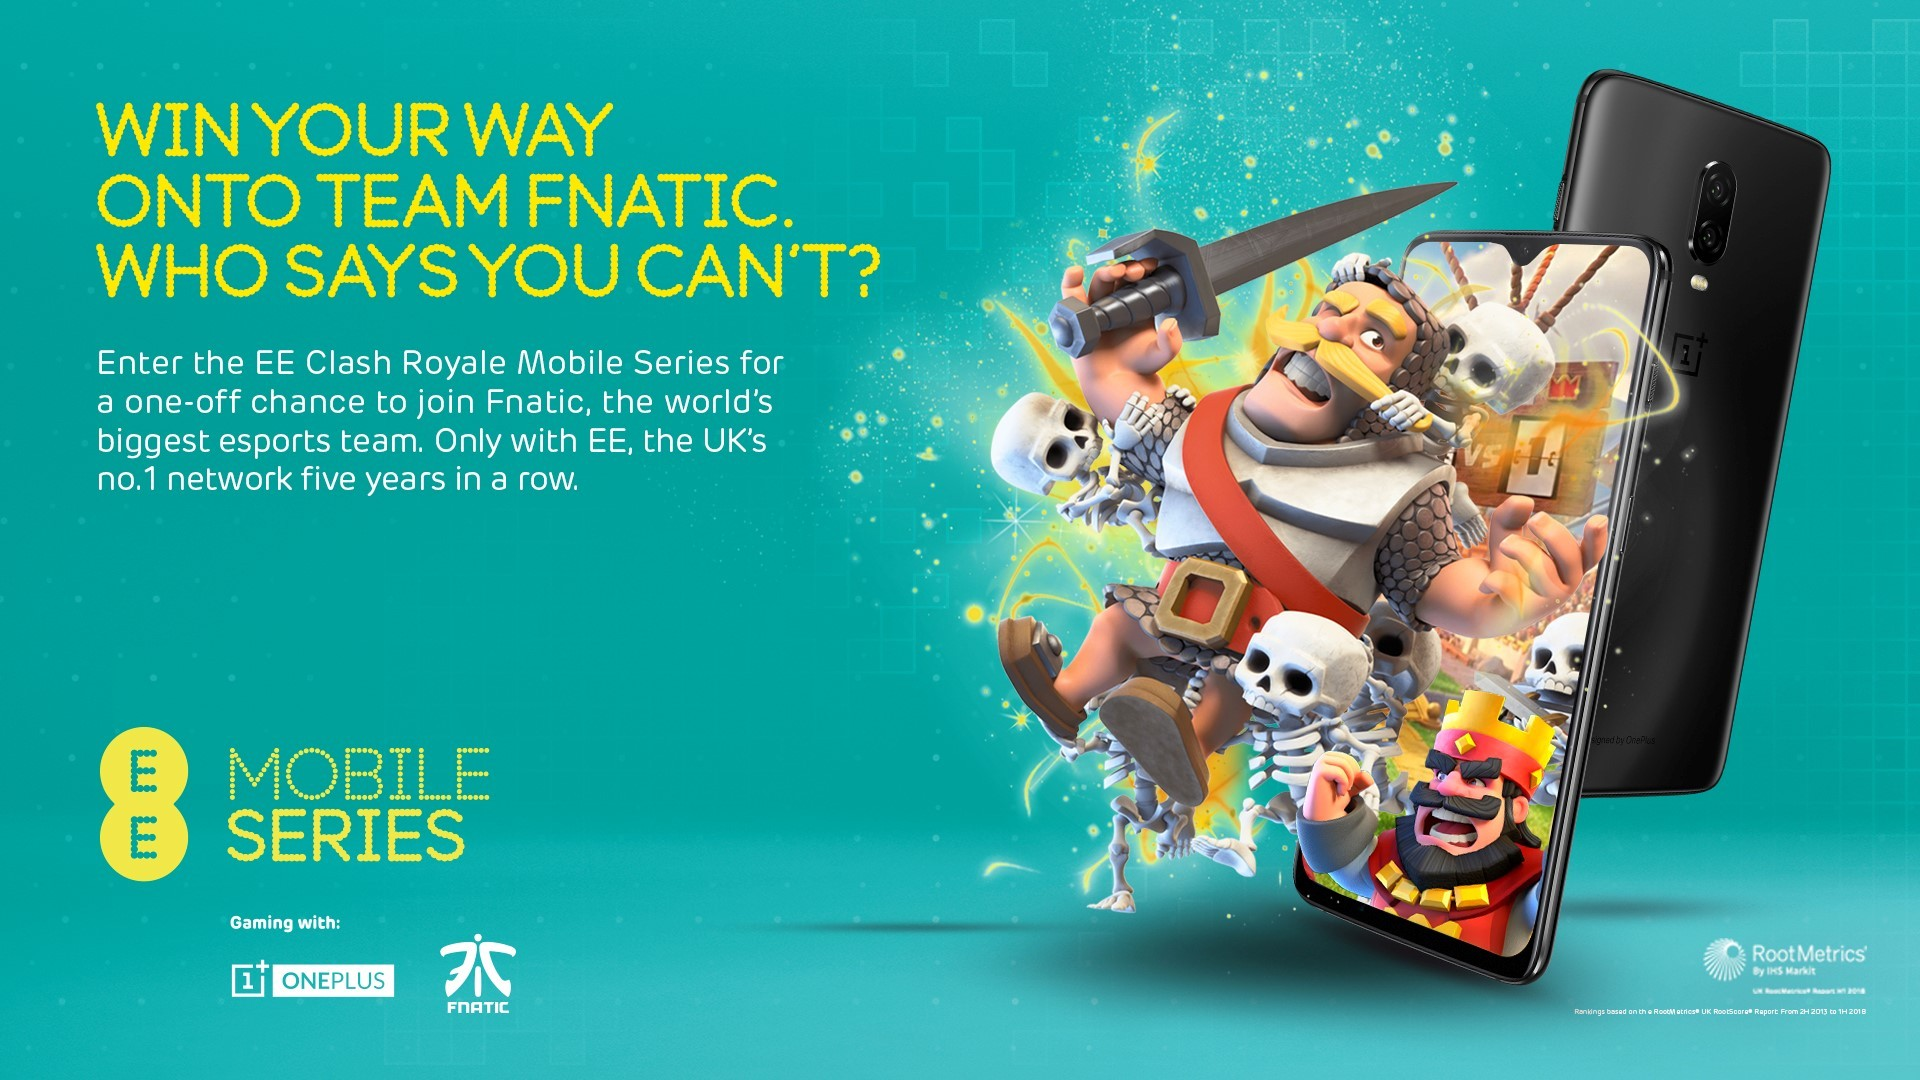 EE Mobile series asset 2